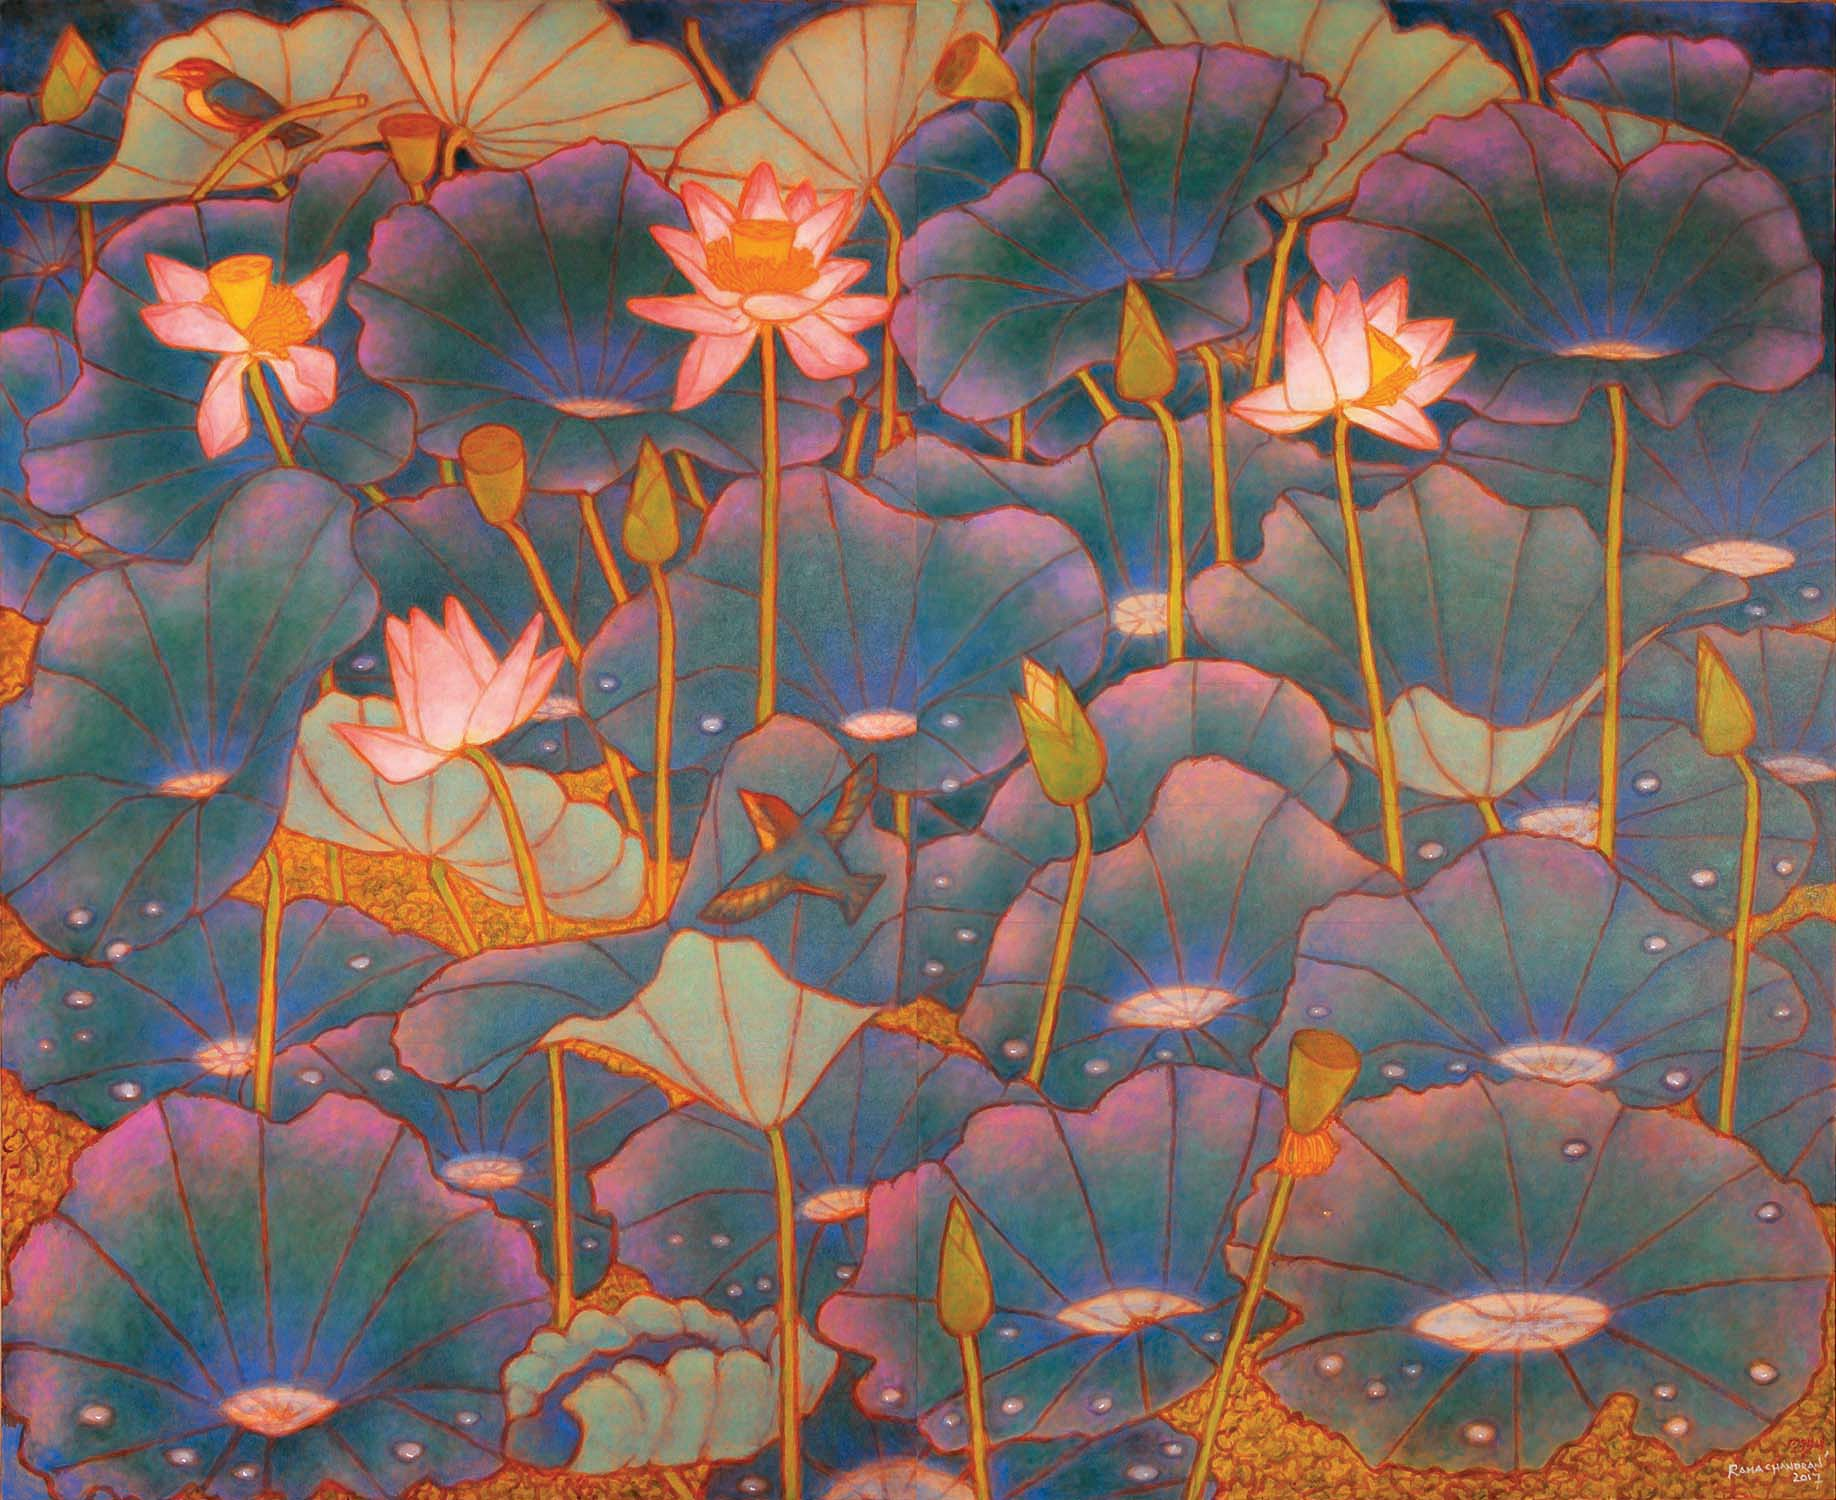 A RAMACHANDRAN | The Changing Moods of Lotus Pond and Insignificant Incarnations series  13 November - 2 December 2018